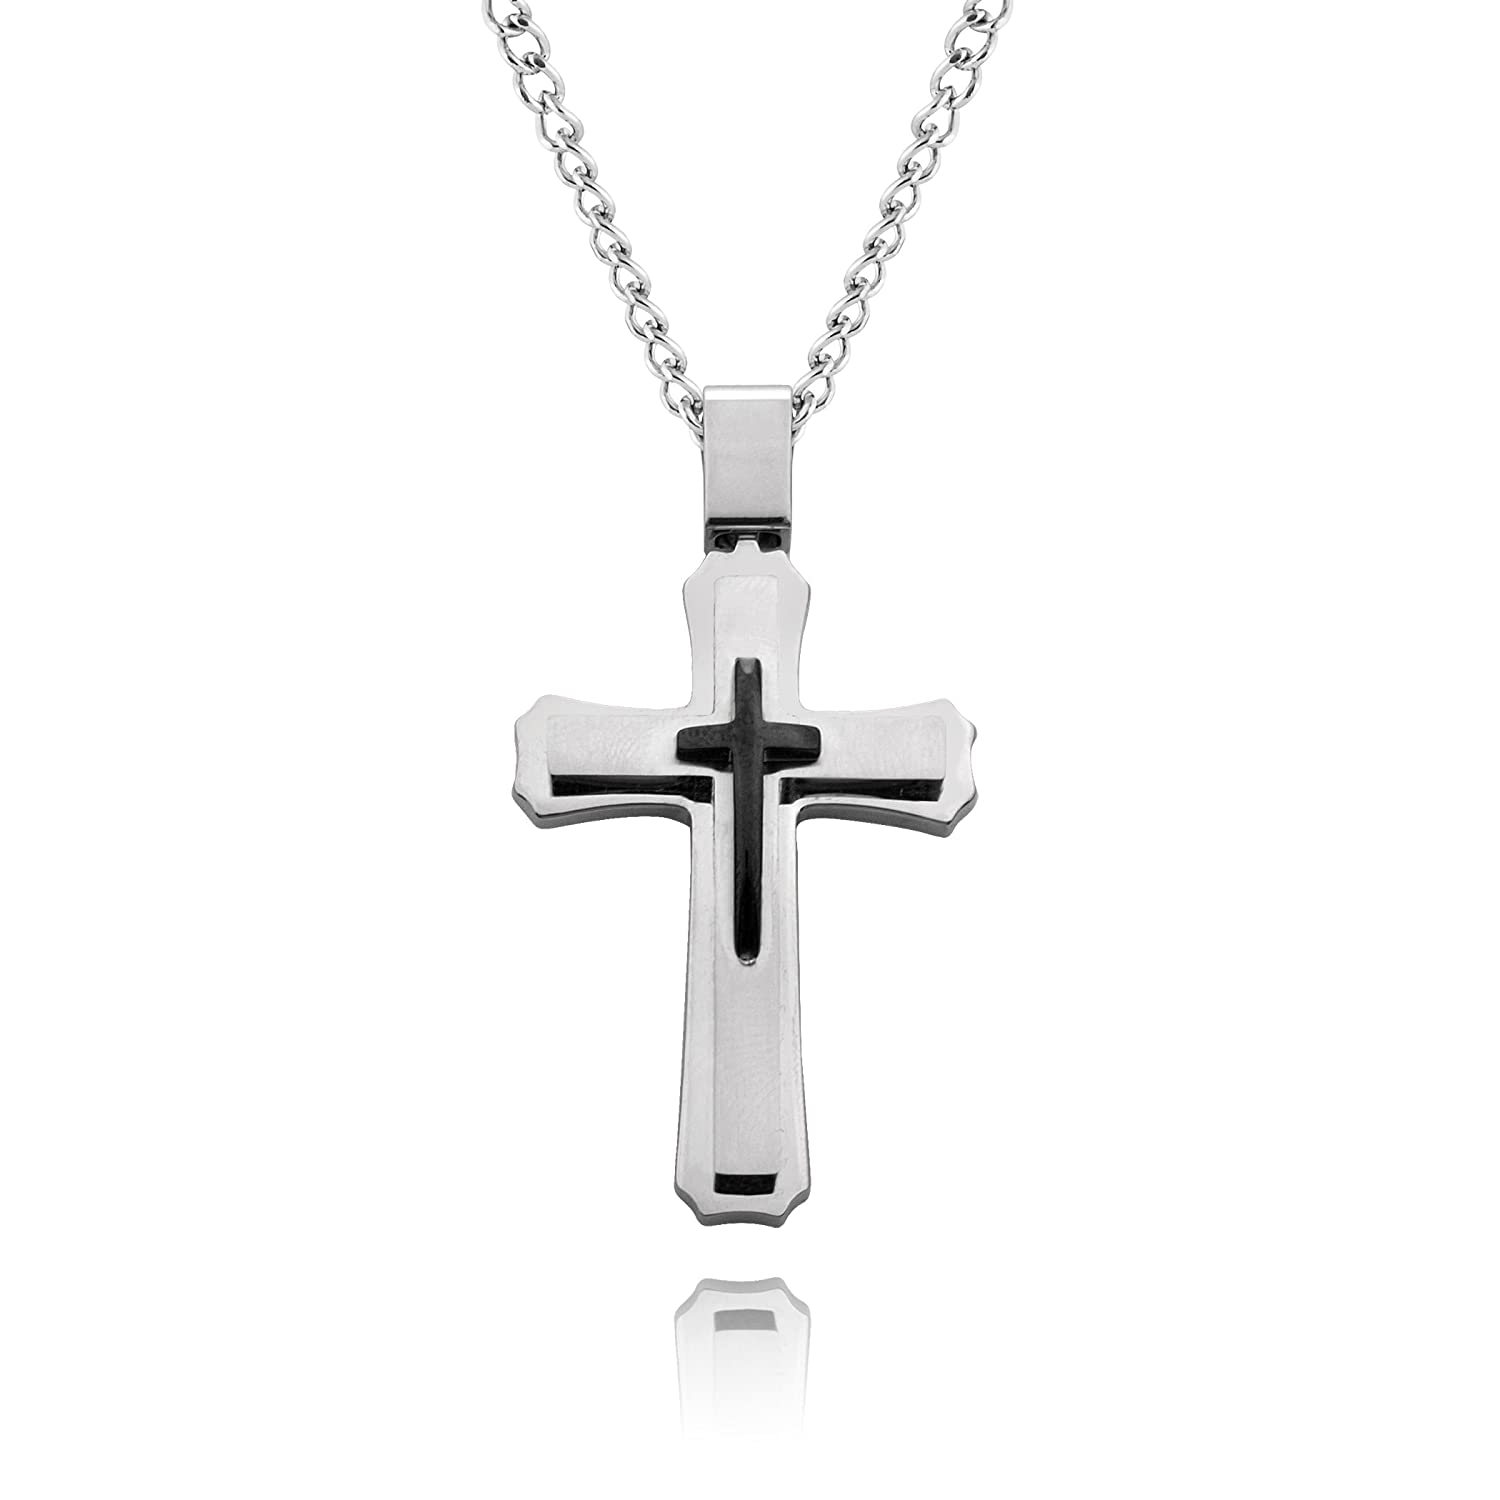 Amazon cross necklace for men women with large pendant and amazon cross necklace for men women with large pendant and 24 inch curb chain jewelry aloadofball Images